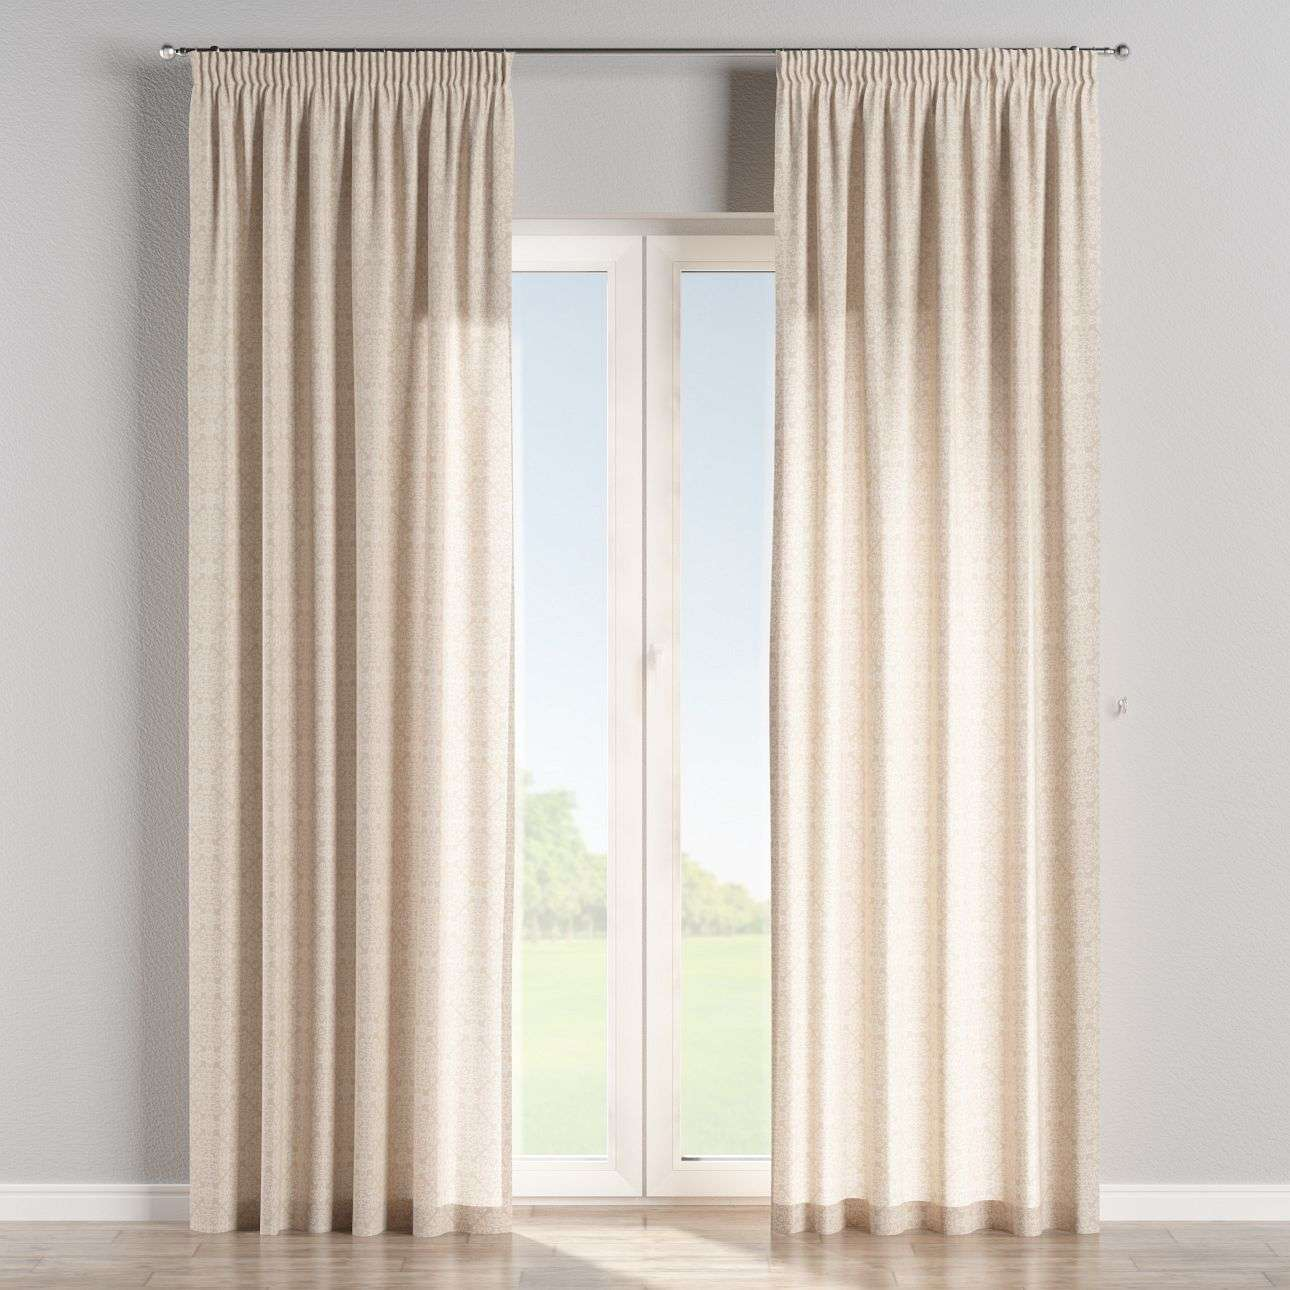 Pencil pleat curtains in collection Flowers, fabric: 140-39